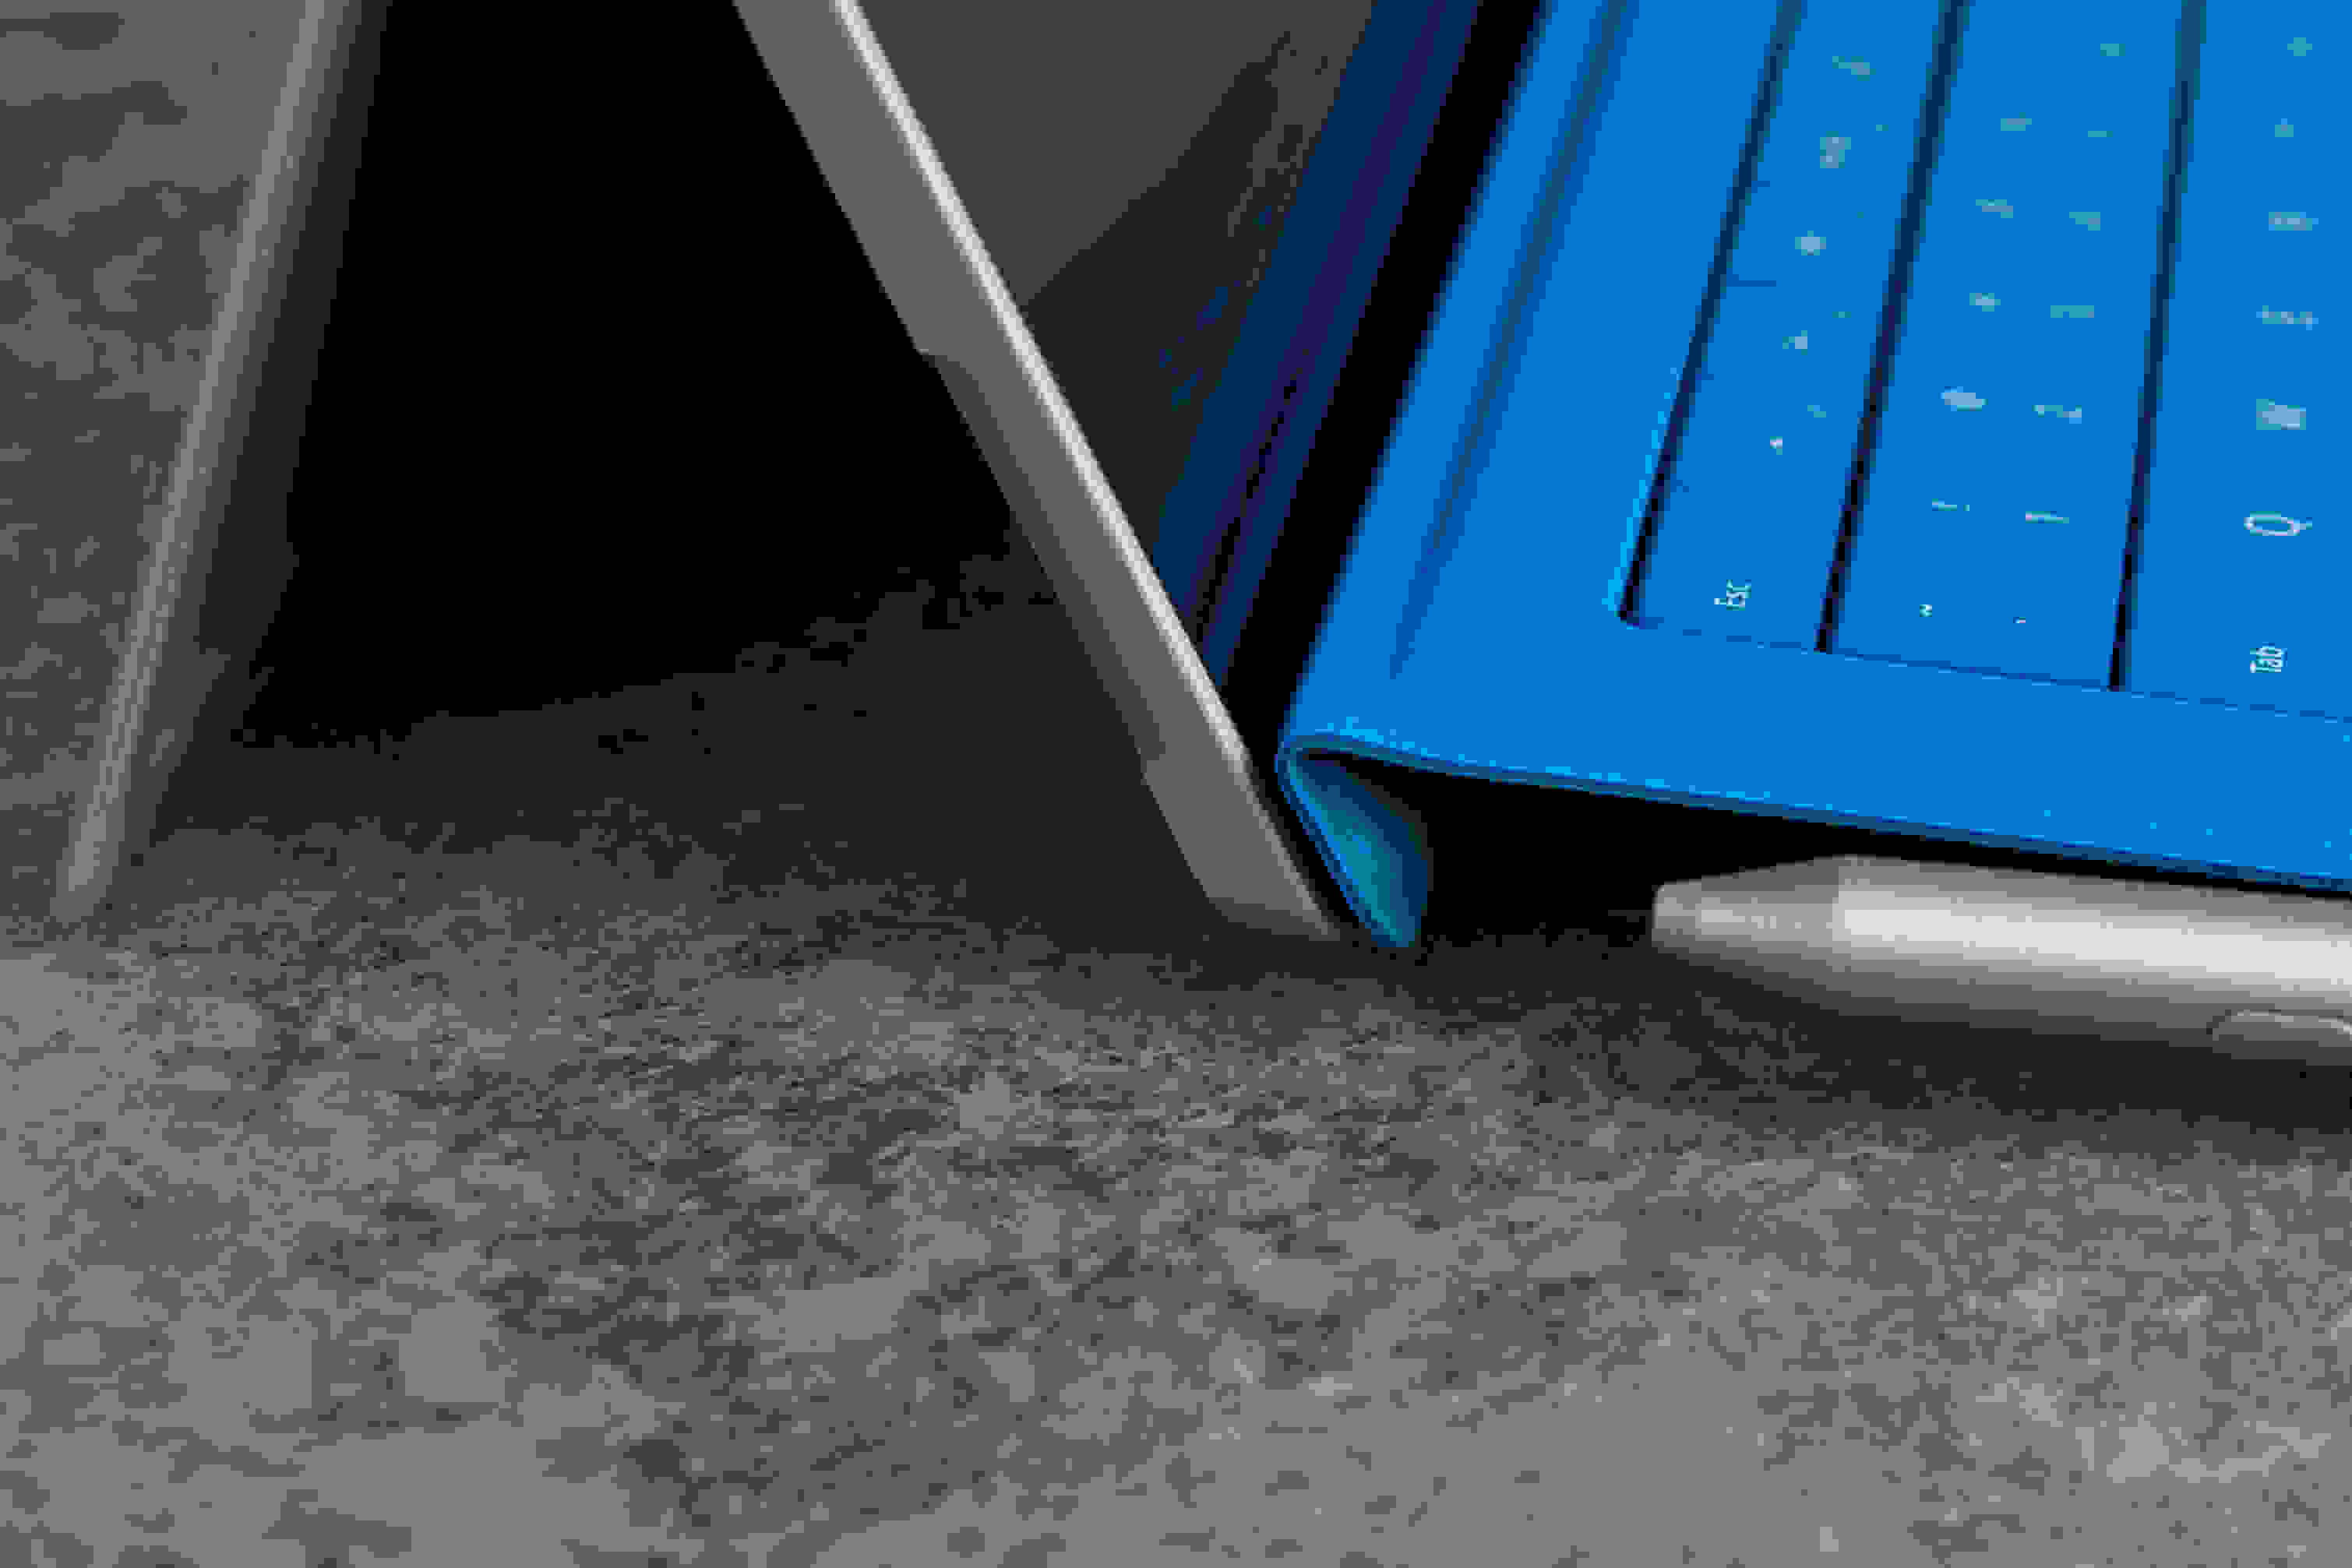 A closer look at the Microsoft Surface Pro 3's keyboard magnets.